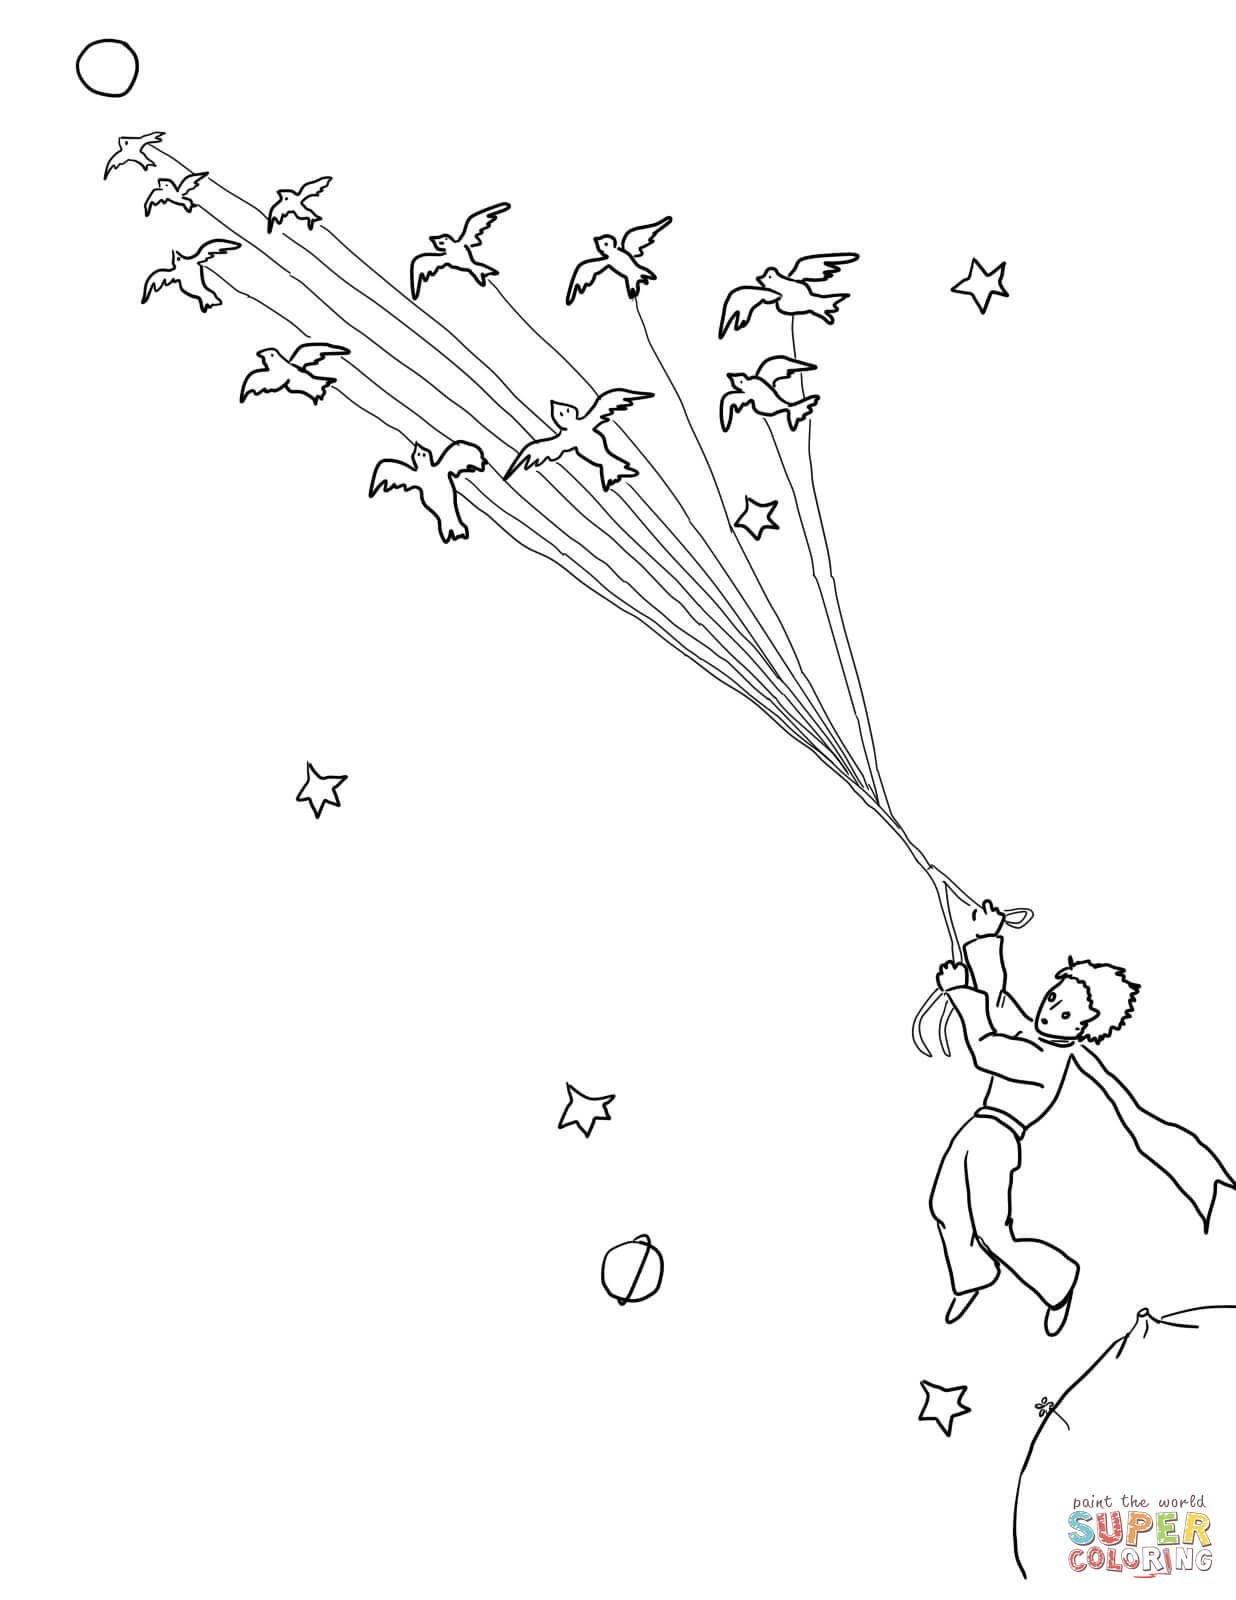 Little Prince Leave His Planet With Migrating Birds